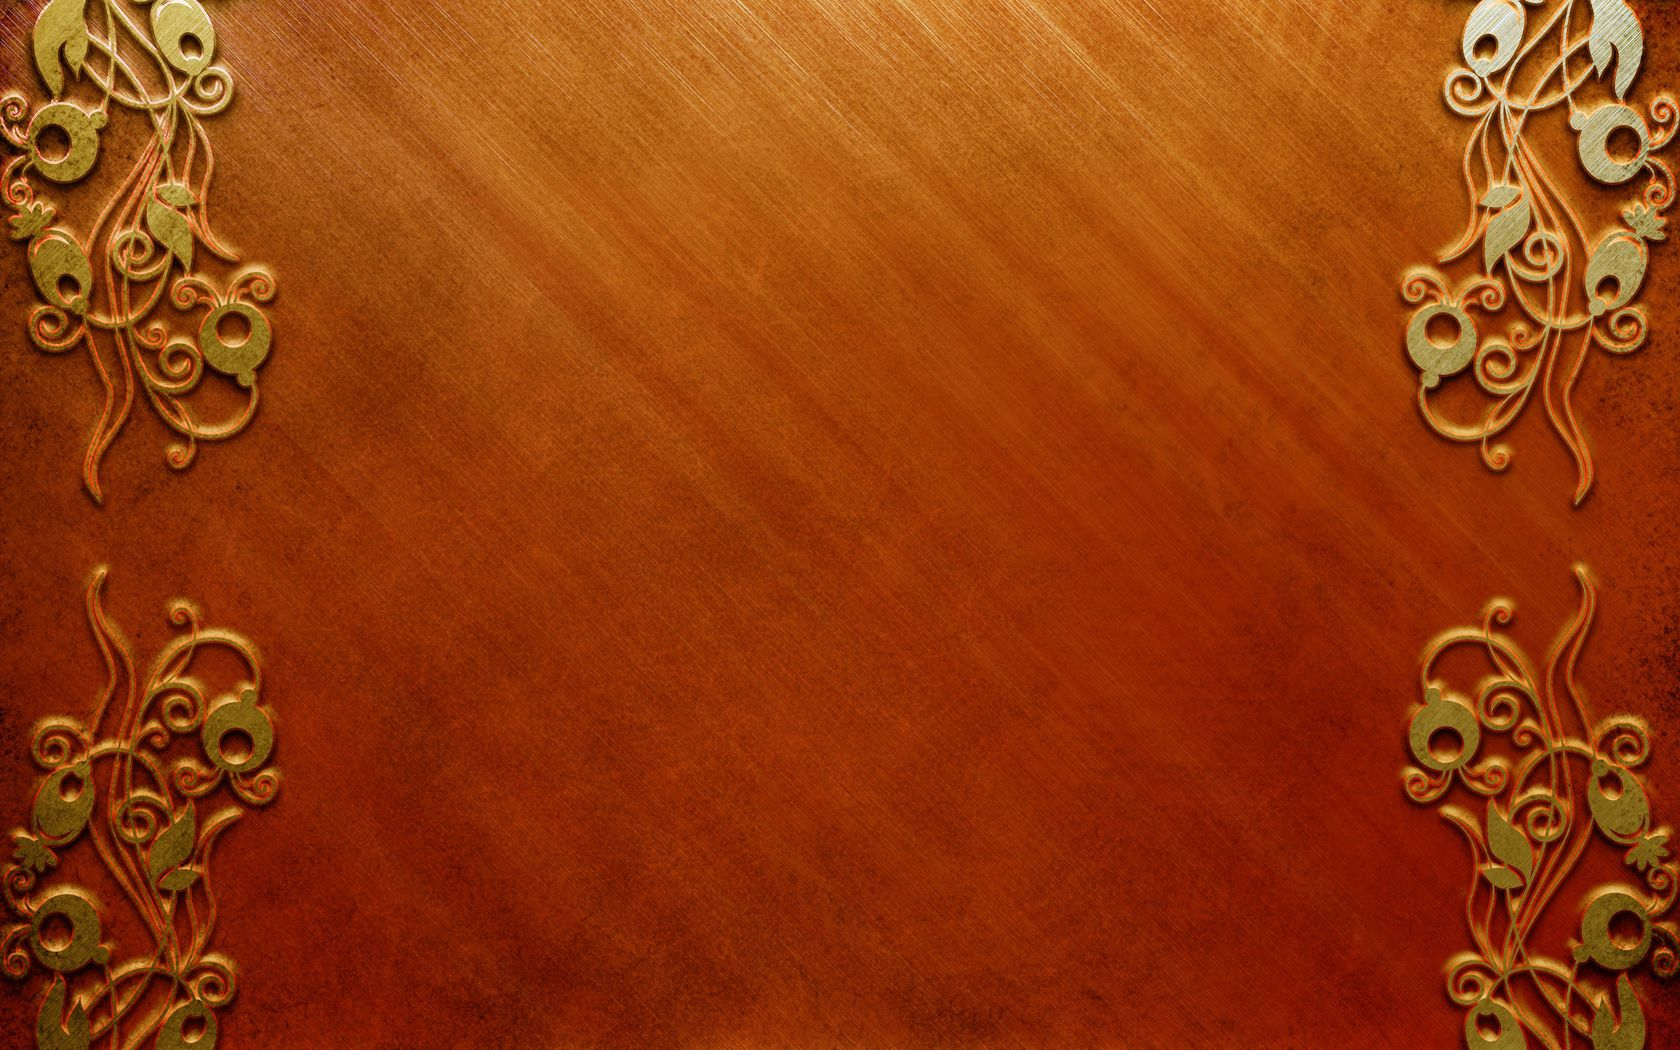 119871 free wallpaper 360x640 for phone, download images Textures, Background, Patterns, Wood, Wooden, Texture, Surface 360x640 for mobile